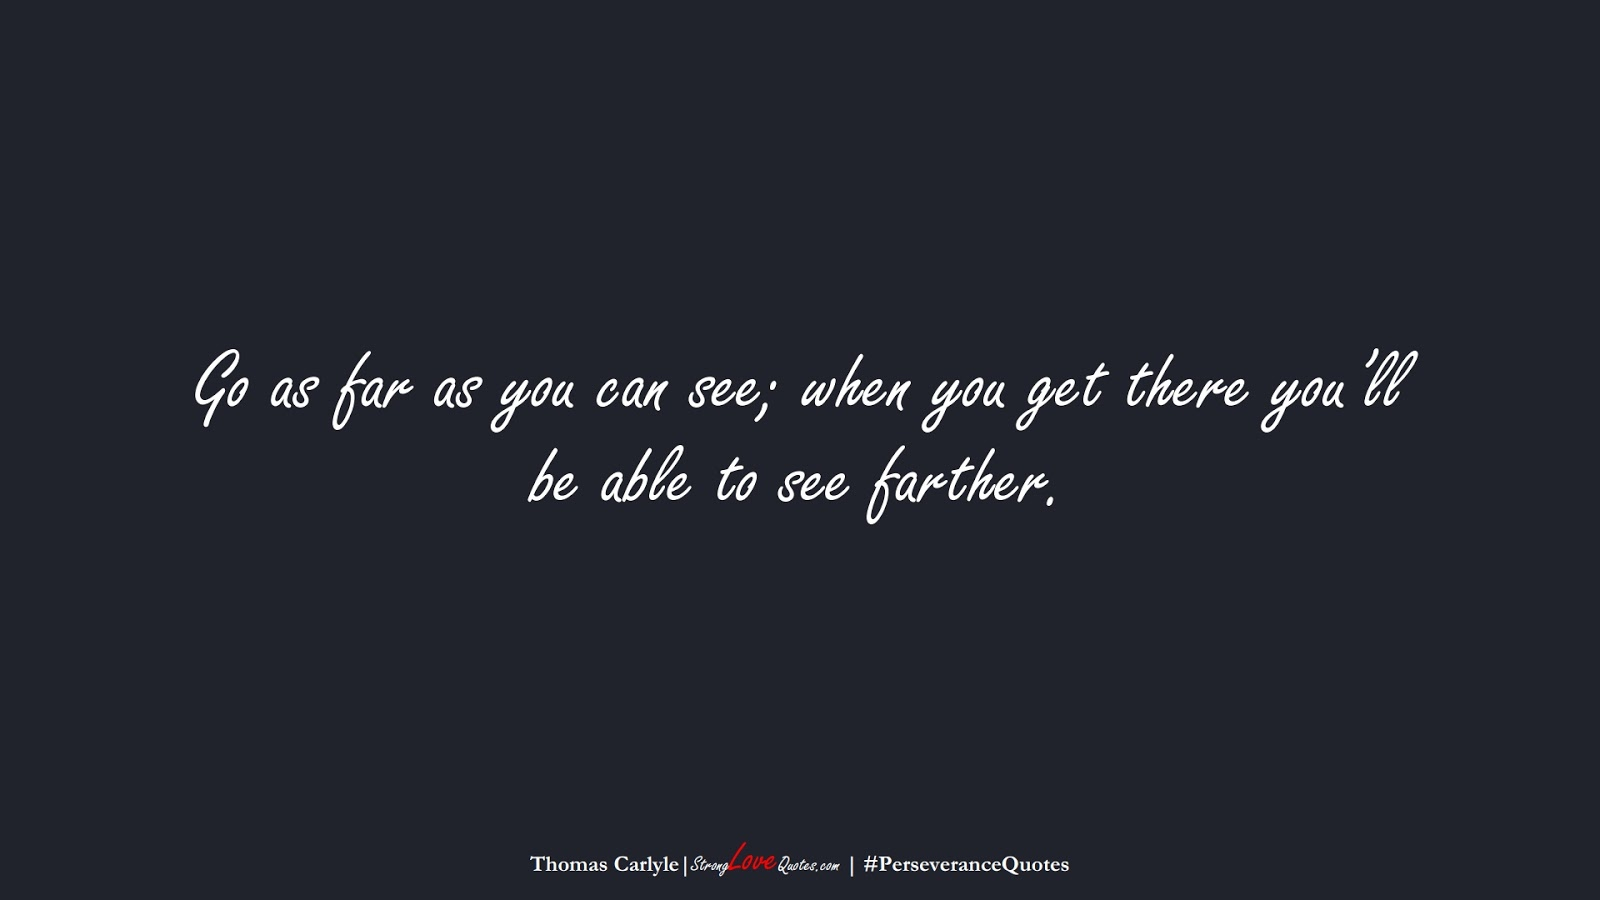 Go as far as you can see; when you get there you'll be able to see farther. (Thomas Carlyle);  #PerseveranceQuotes